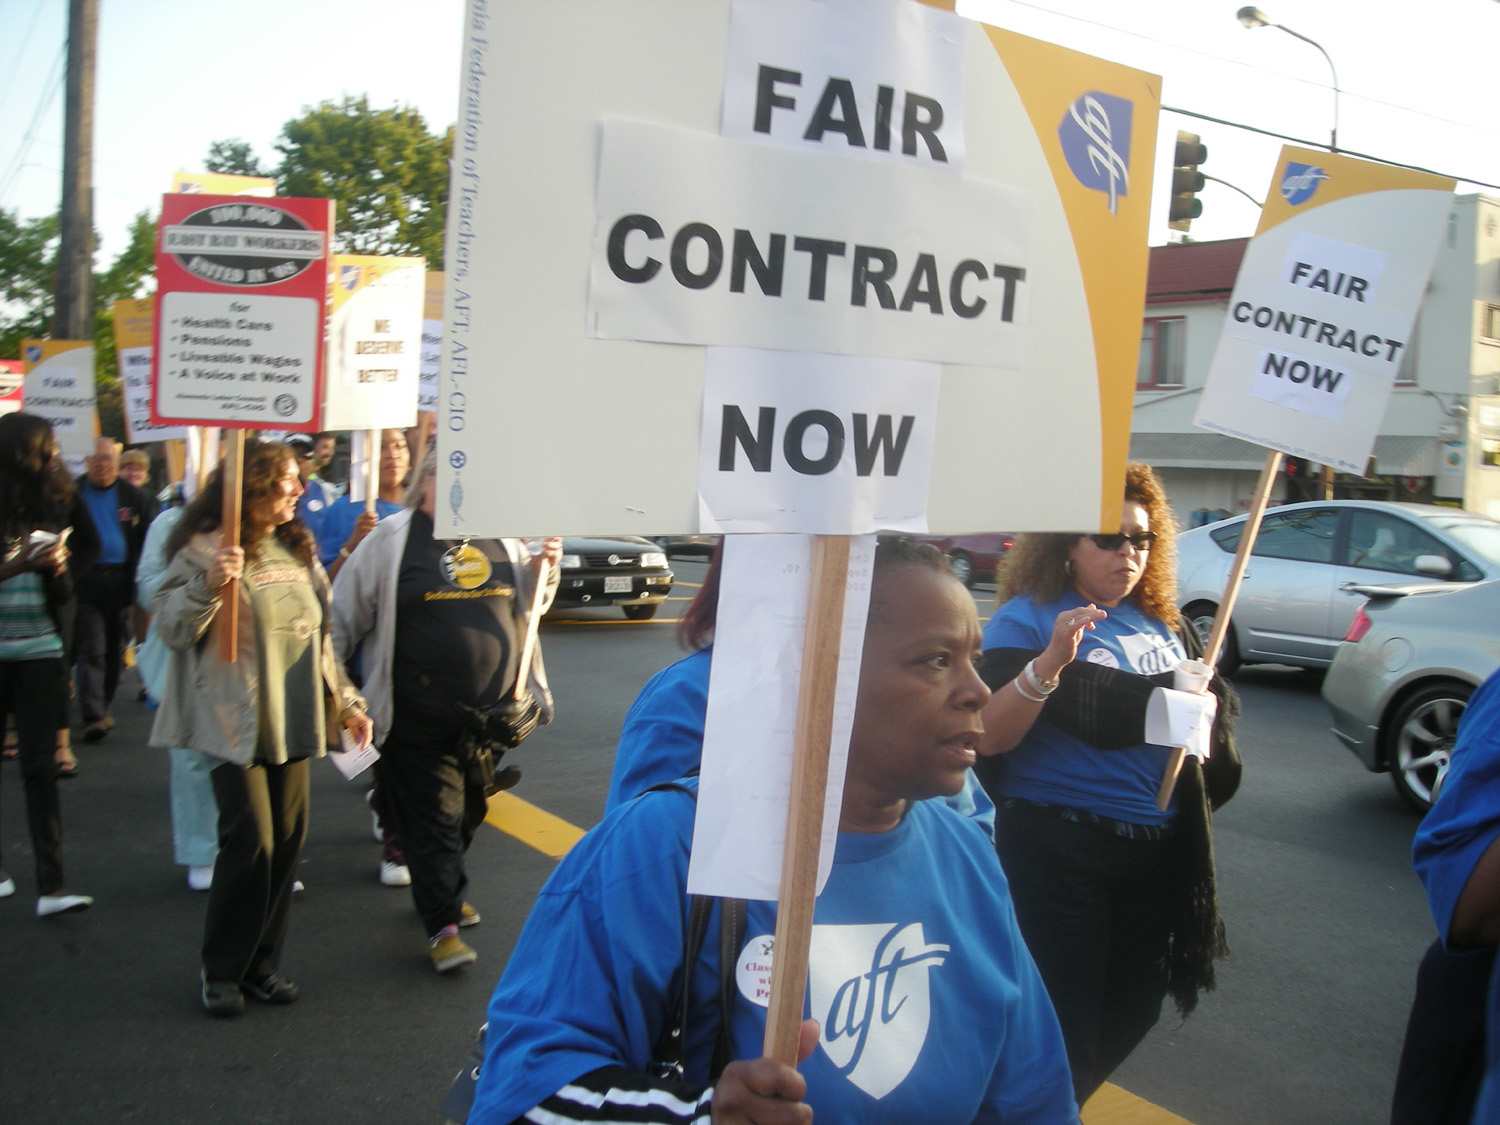 Workers marched from Berkeley Technology Academy to school district headquarters Wednesday to demand contract renewals and pay raises.